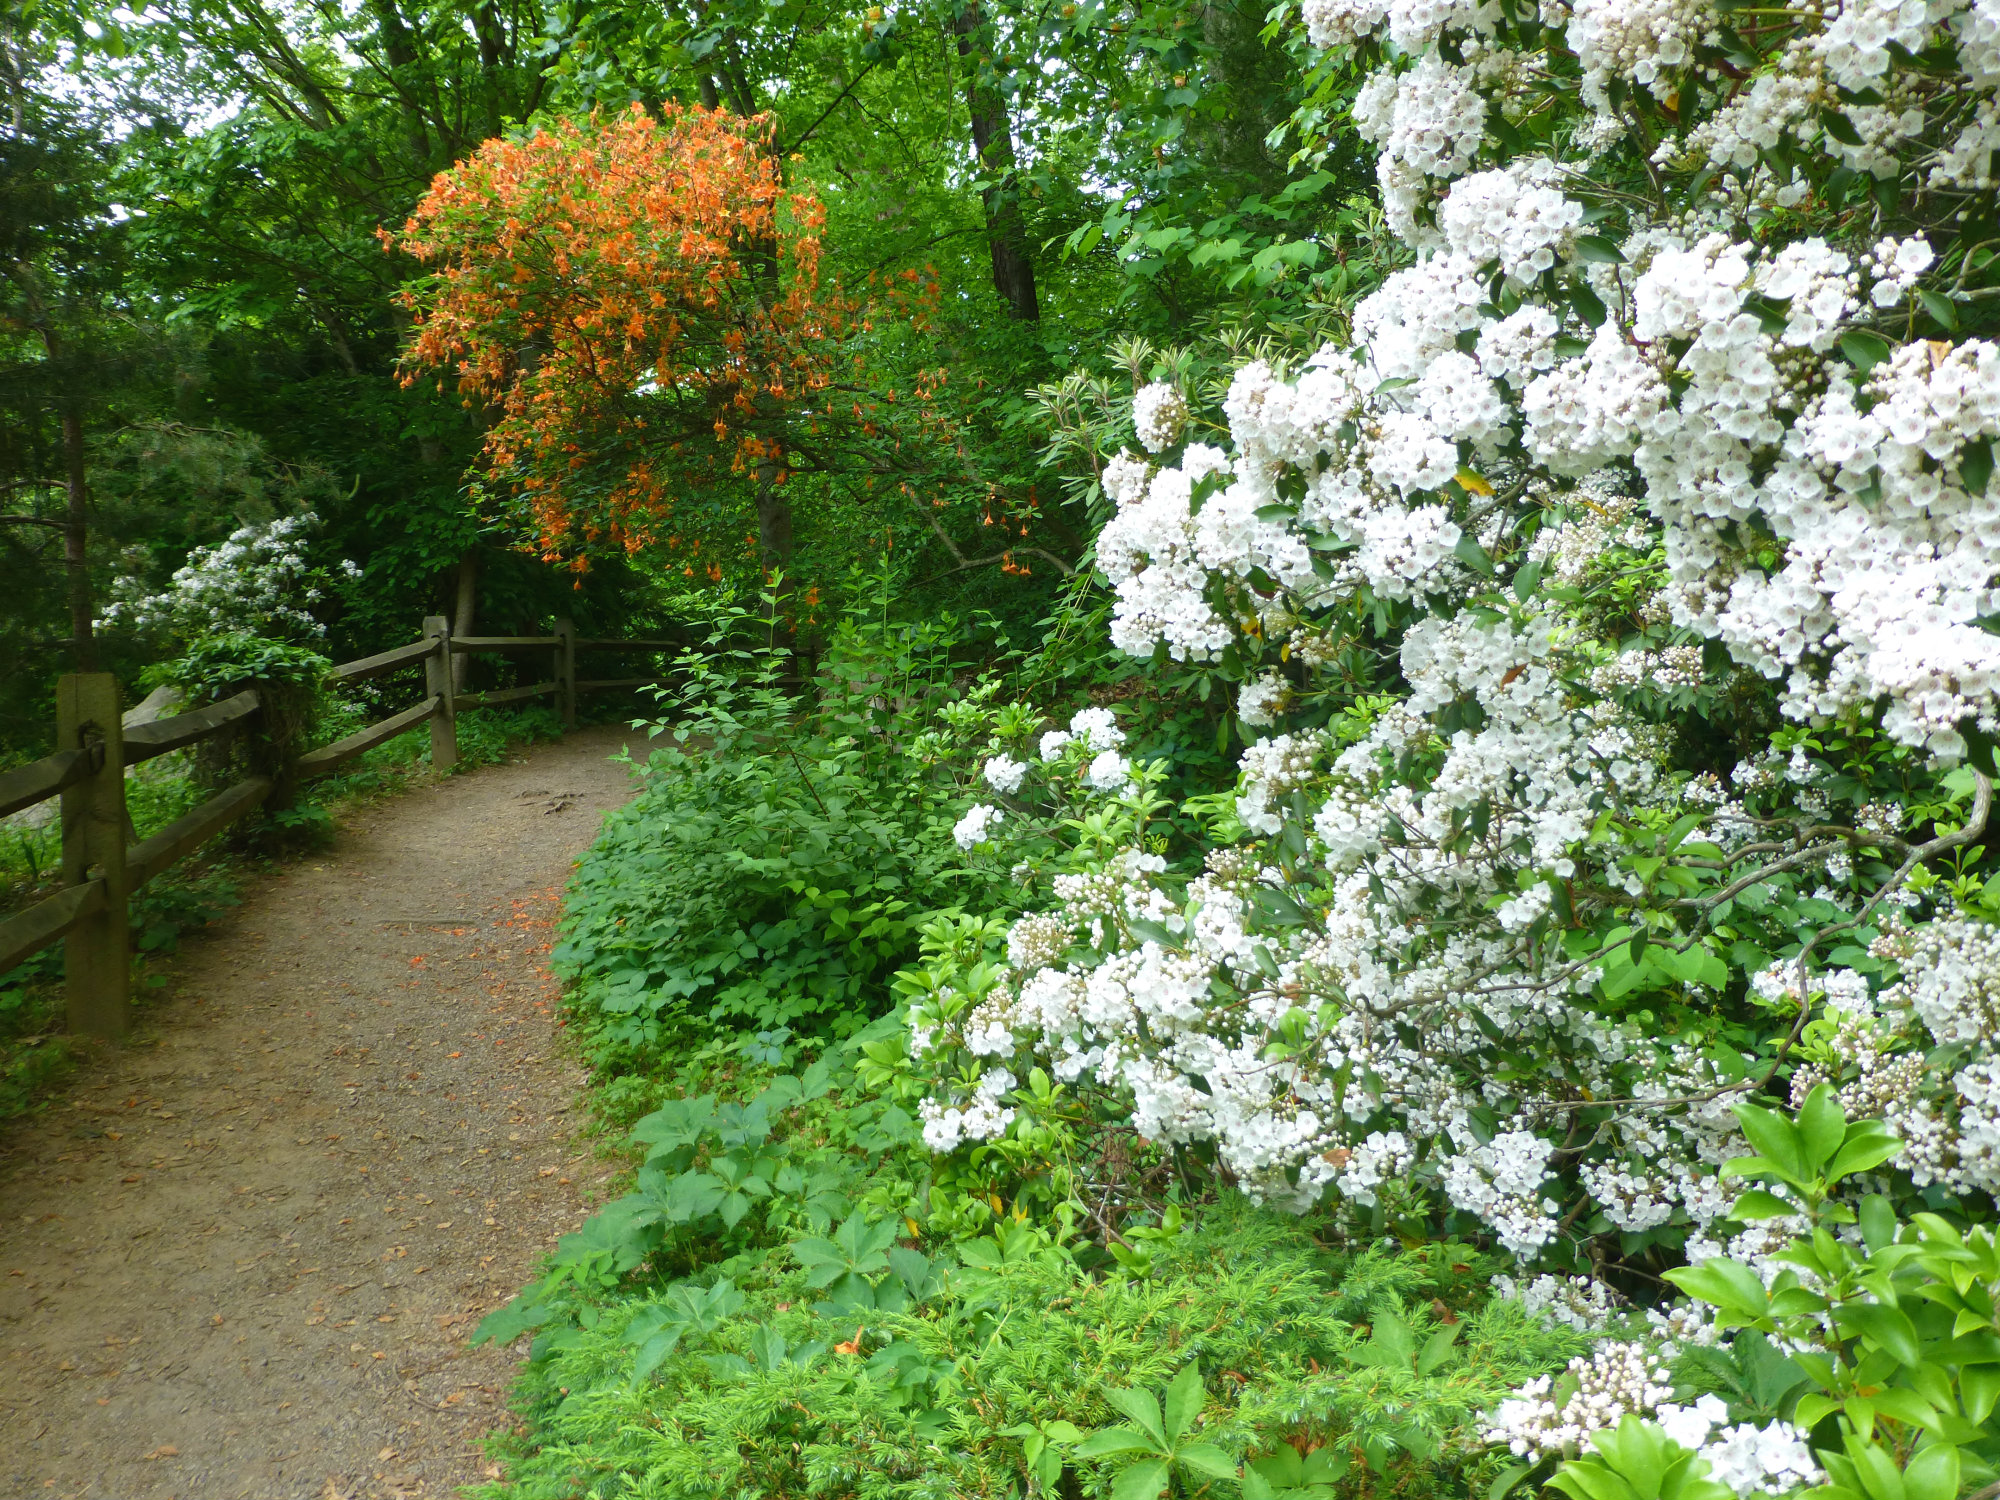 Large flowering shrubs along a wooded path with a split rail fence on the other side